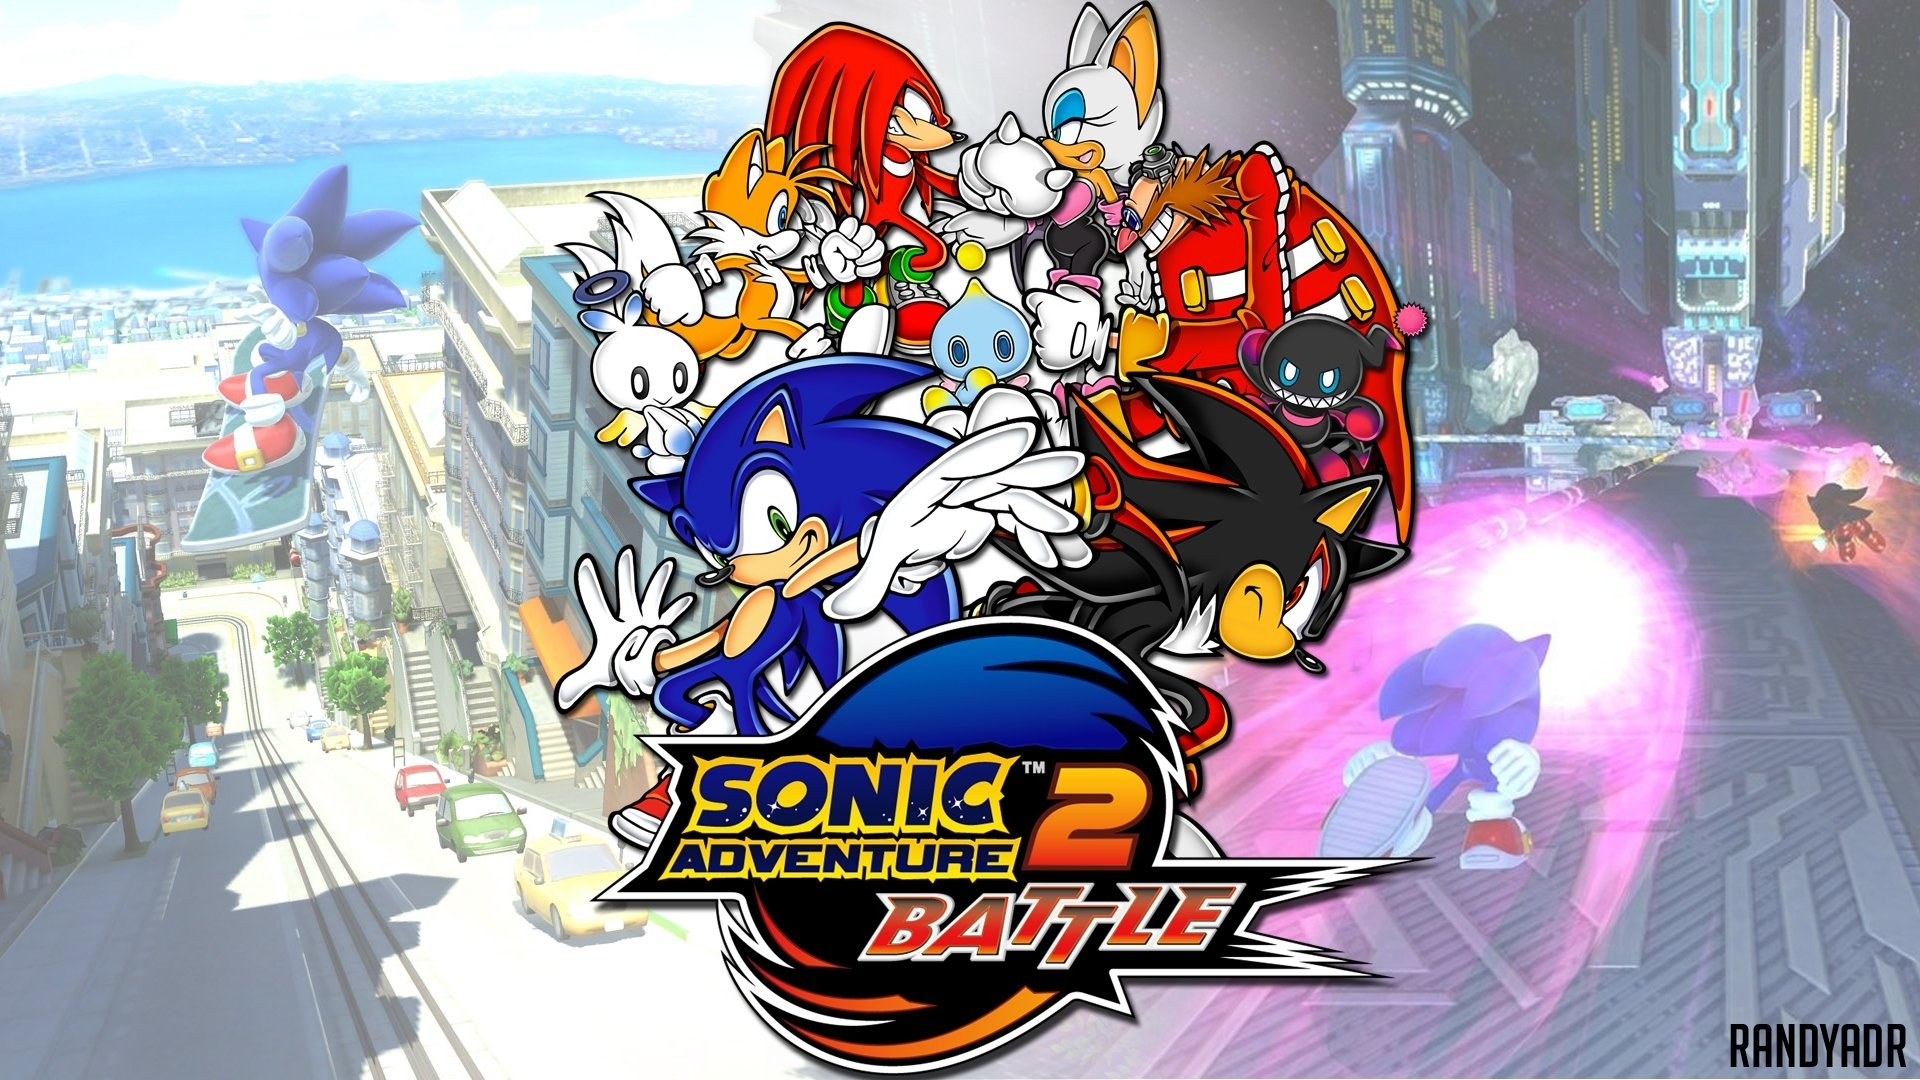 2 sonic adventure 2 battle hd wallpapers | background images